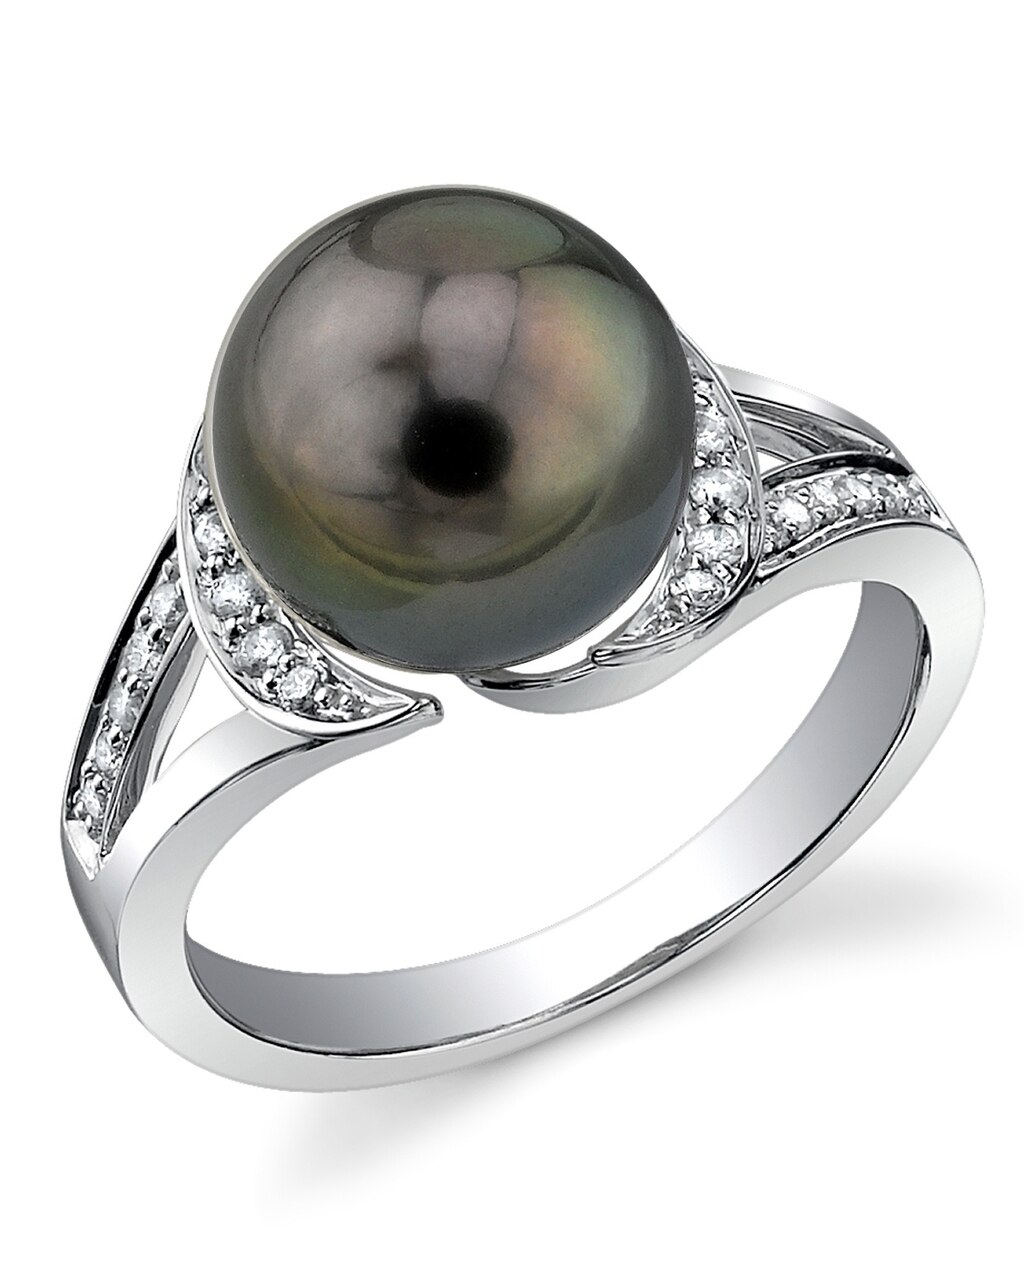 This exquisite ring features an 10.0-11.0mm Tahitian South Sea pearl, handpicked for its luminous luster